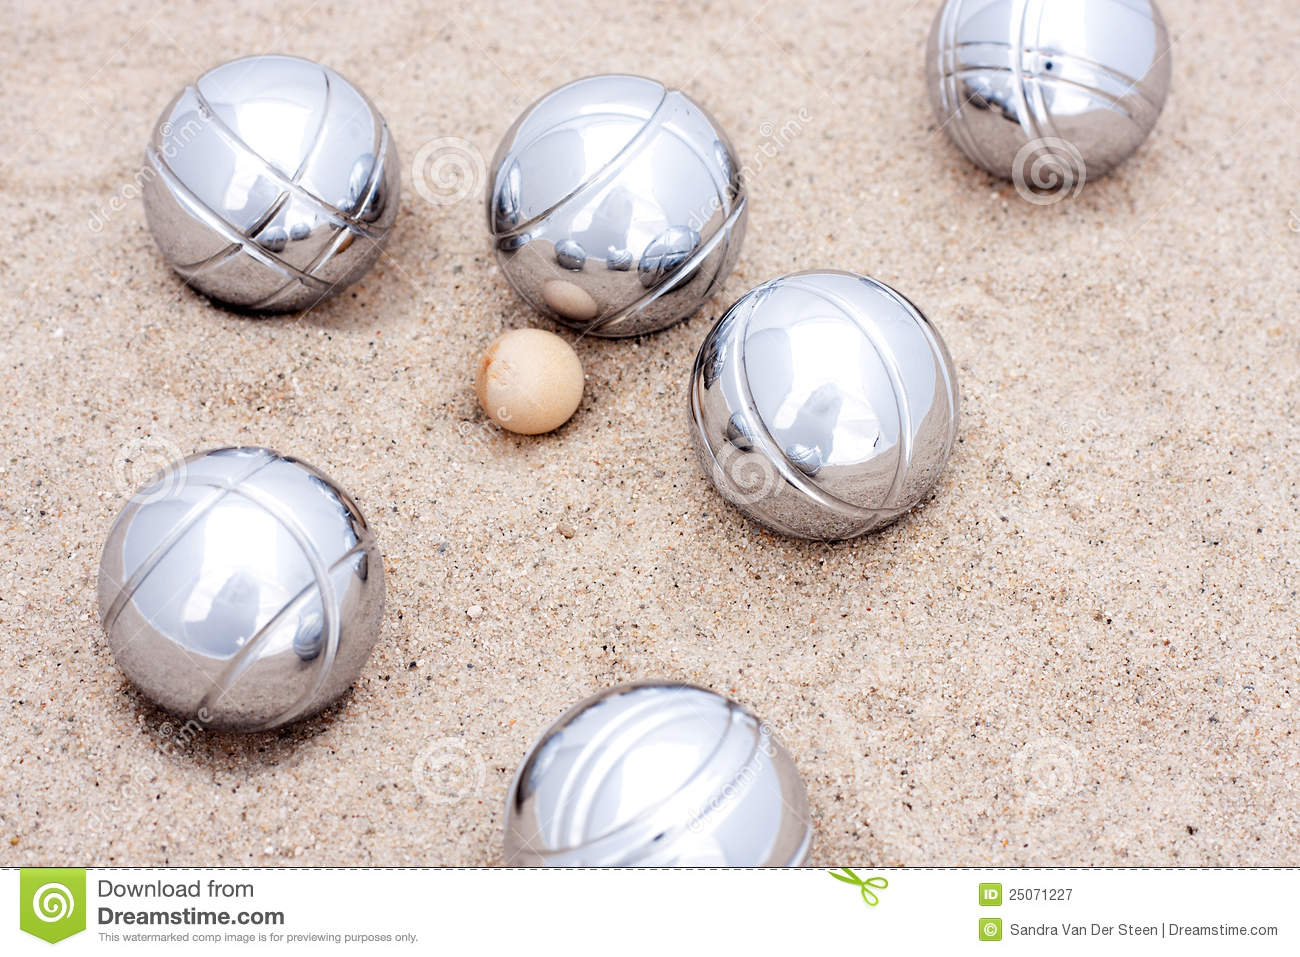 Game of jeu de boule silver metal balls in sand stock for Boule deboule le jeu